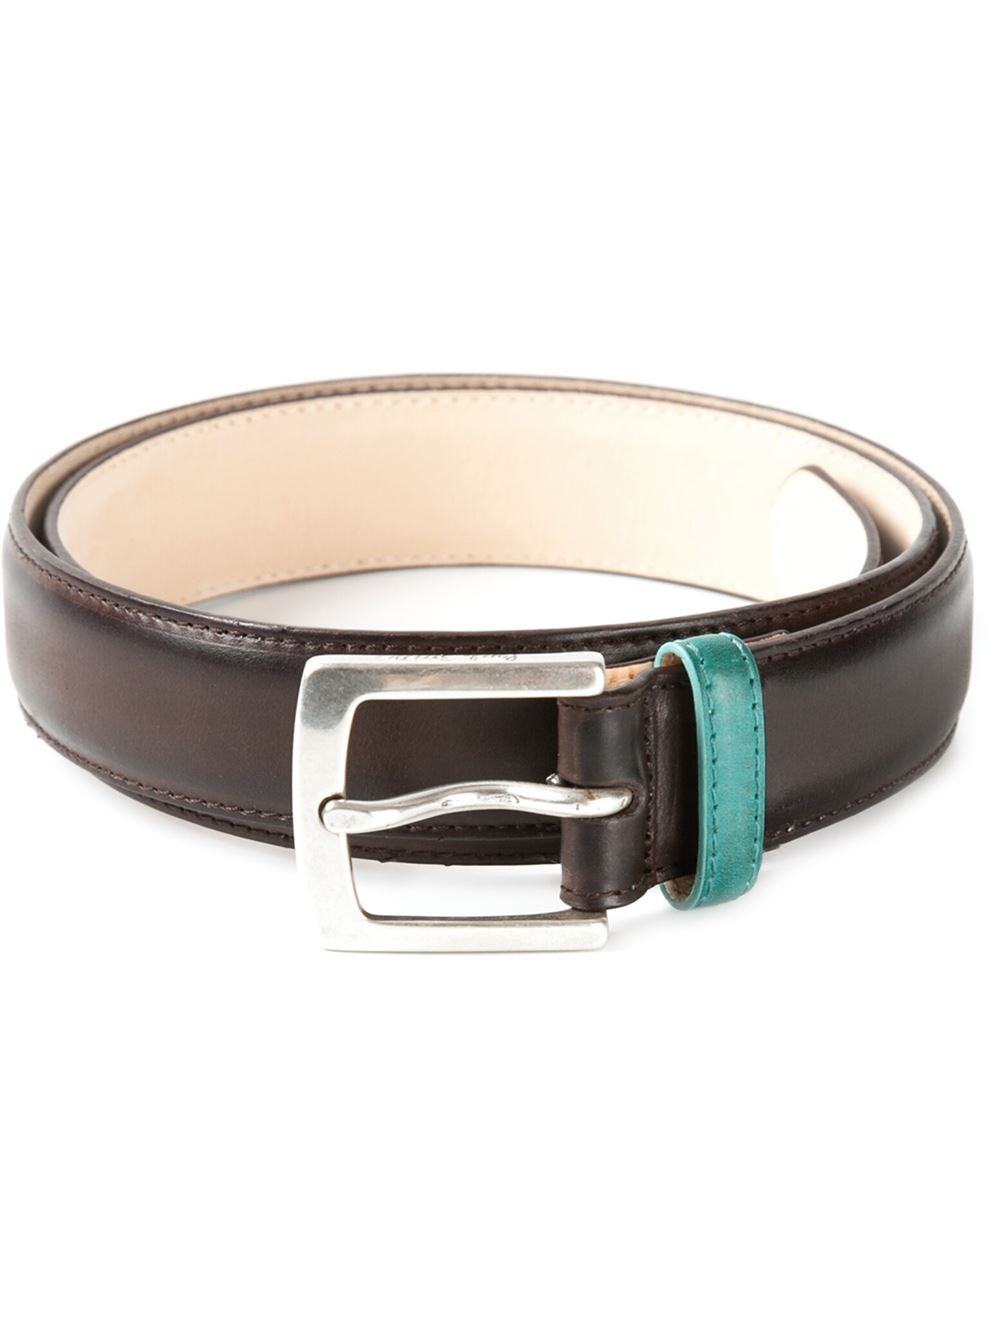 paul smith suit burn belt in brown for lyst